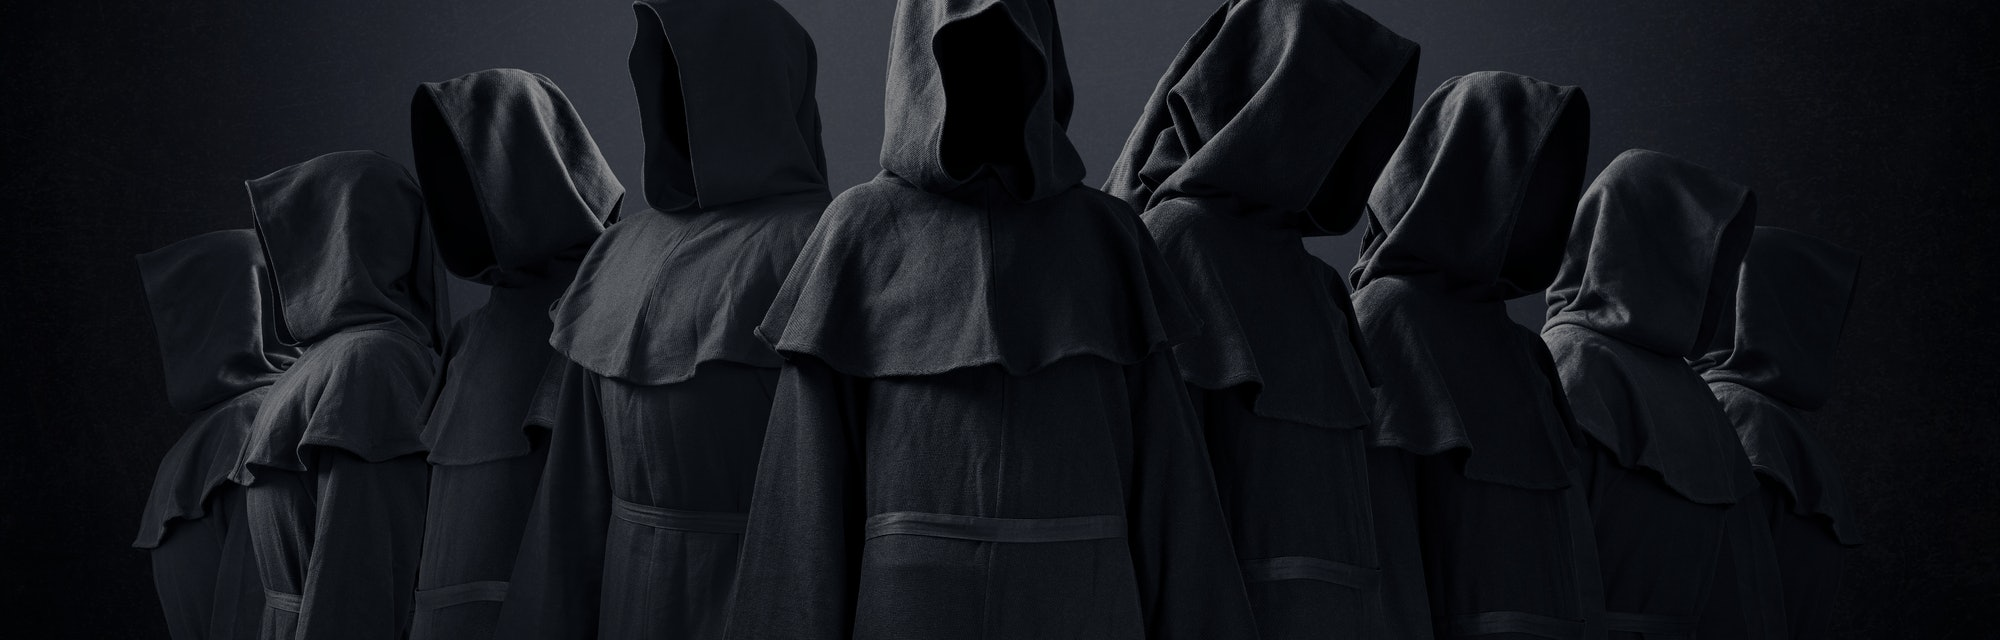 Group of nine scary figures in hooded cloaks in the dark